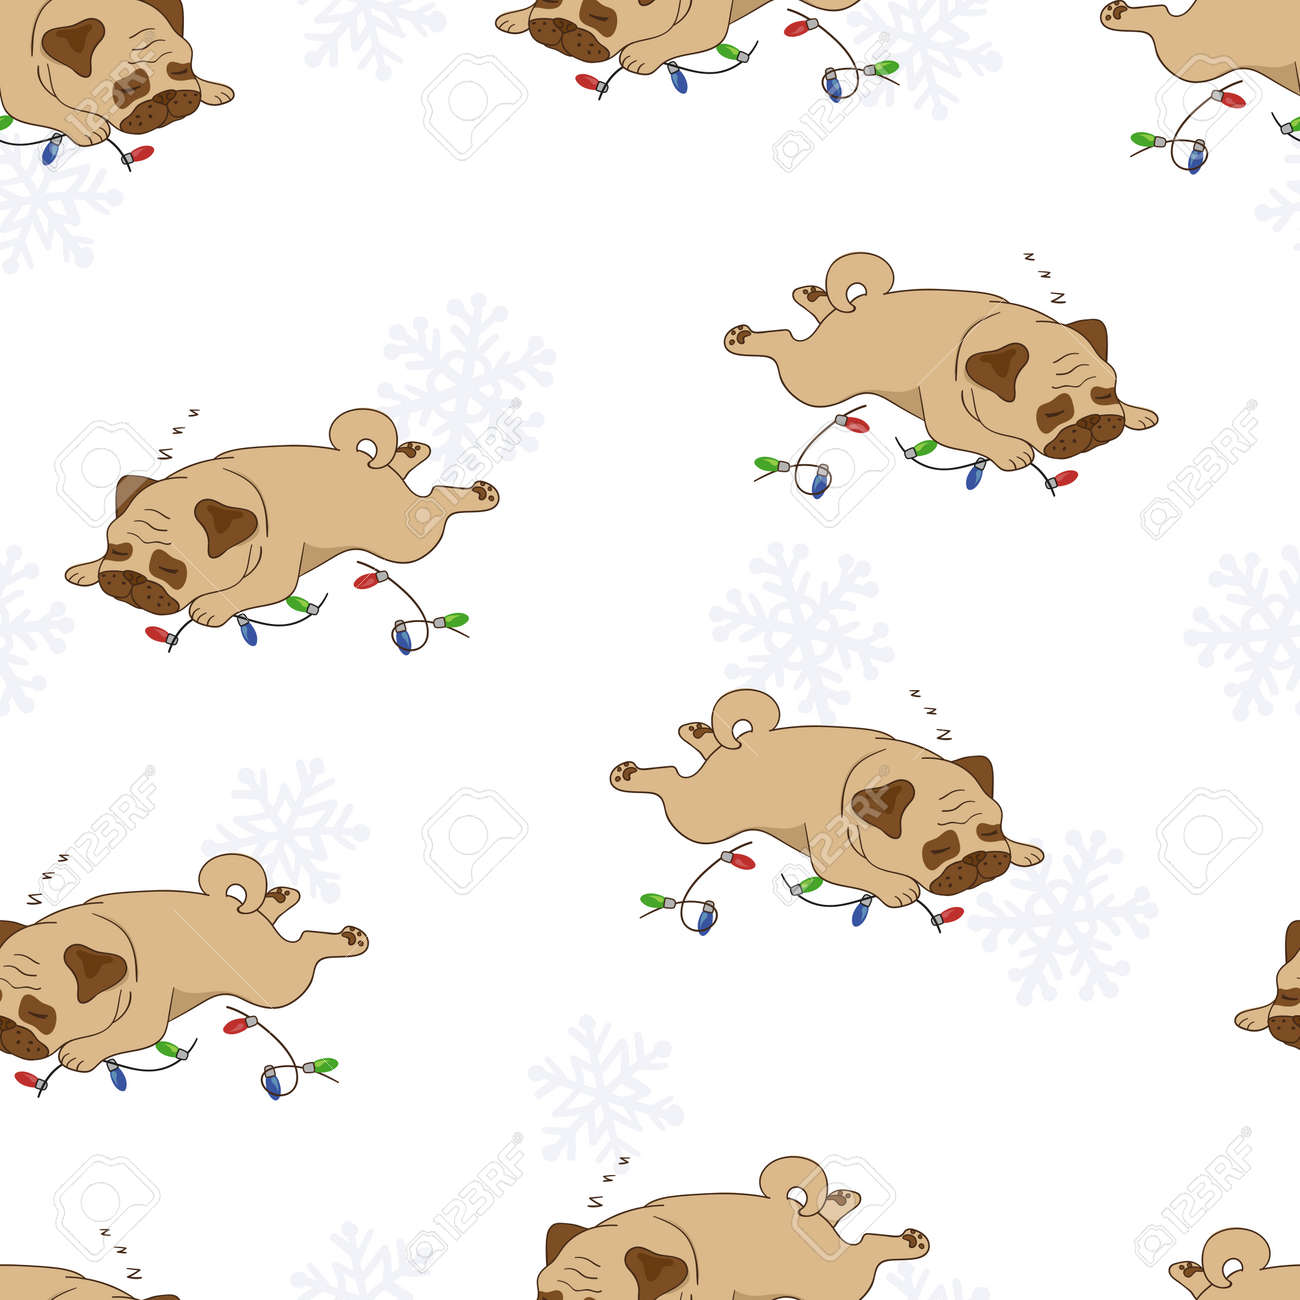 Seamless Sleeping Pugs And Christmas Lights Pattern Vector Holiday Background With Cute Dogs Stock